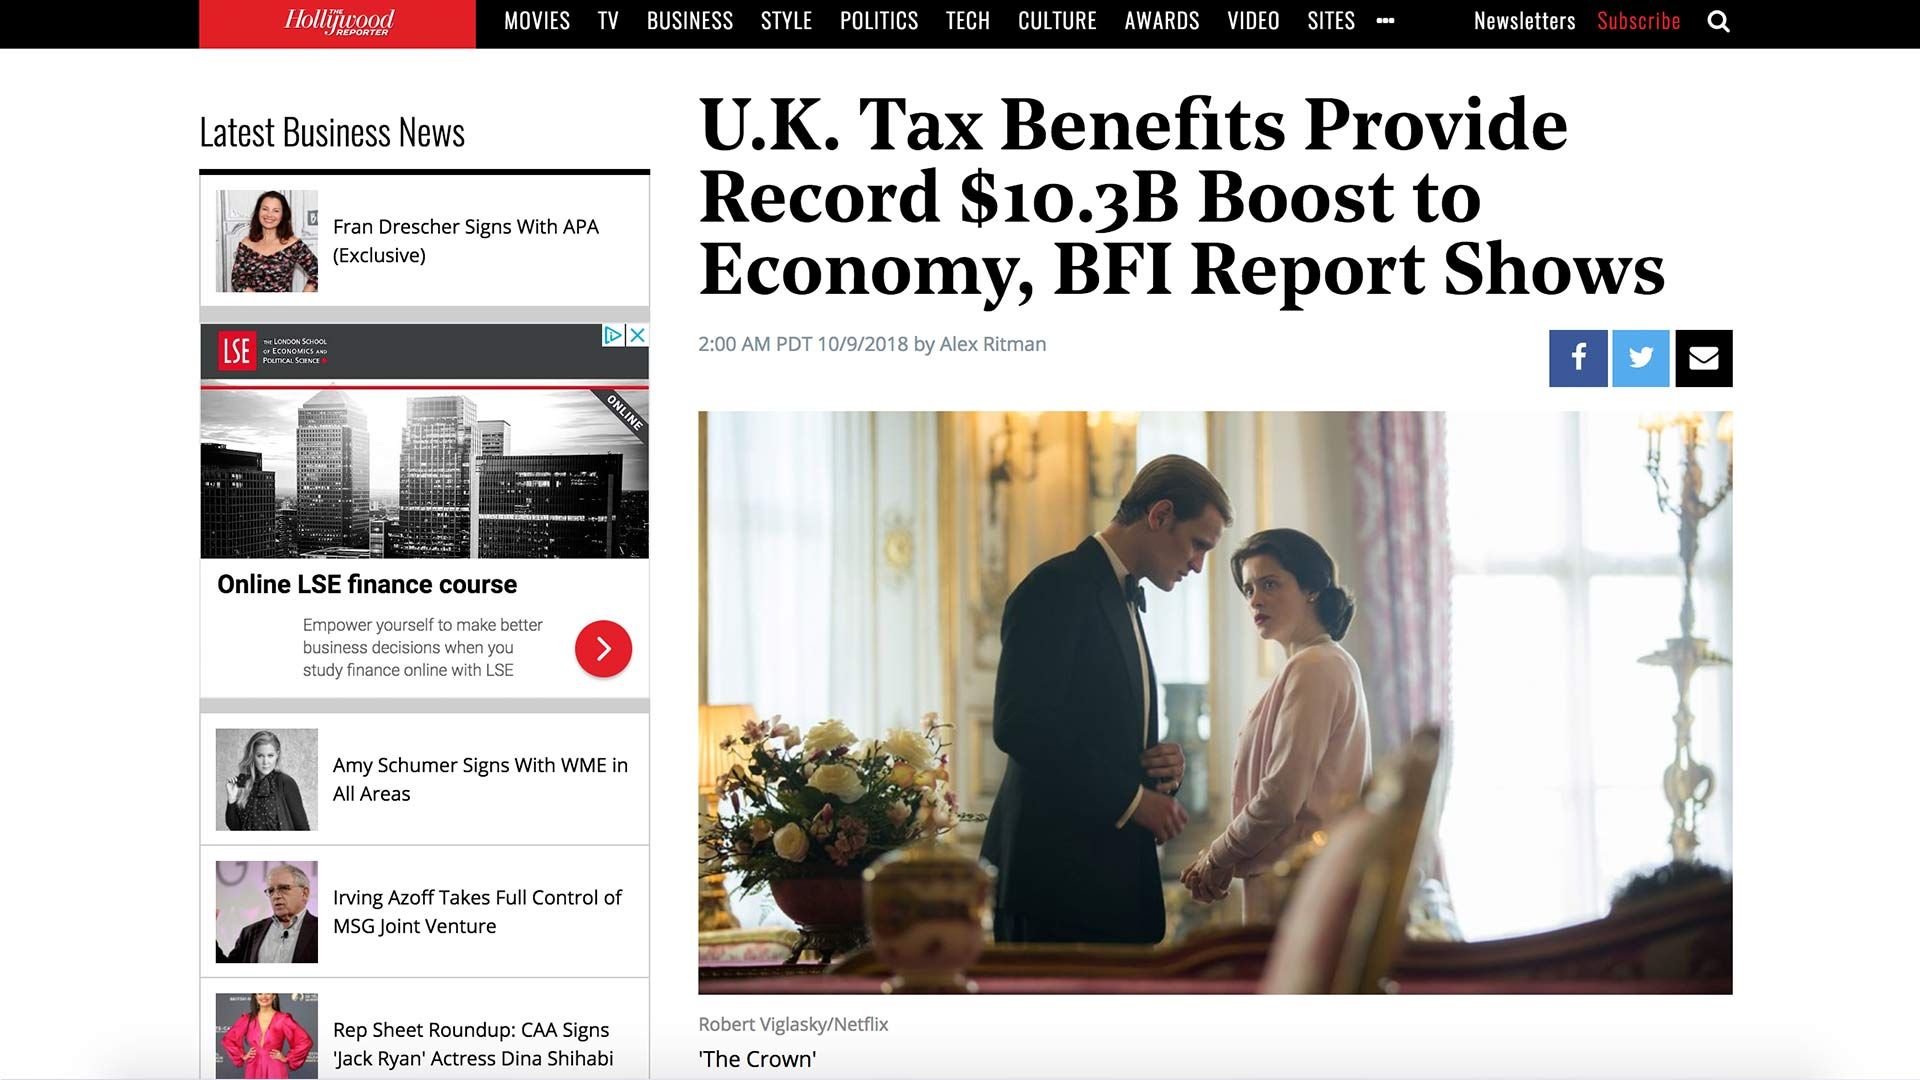 Fairness Rocks News U.K. Tax Benefits Provide Record $10.3B Boost to Economy, BFI Report Shows